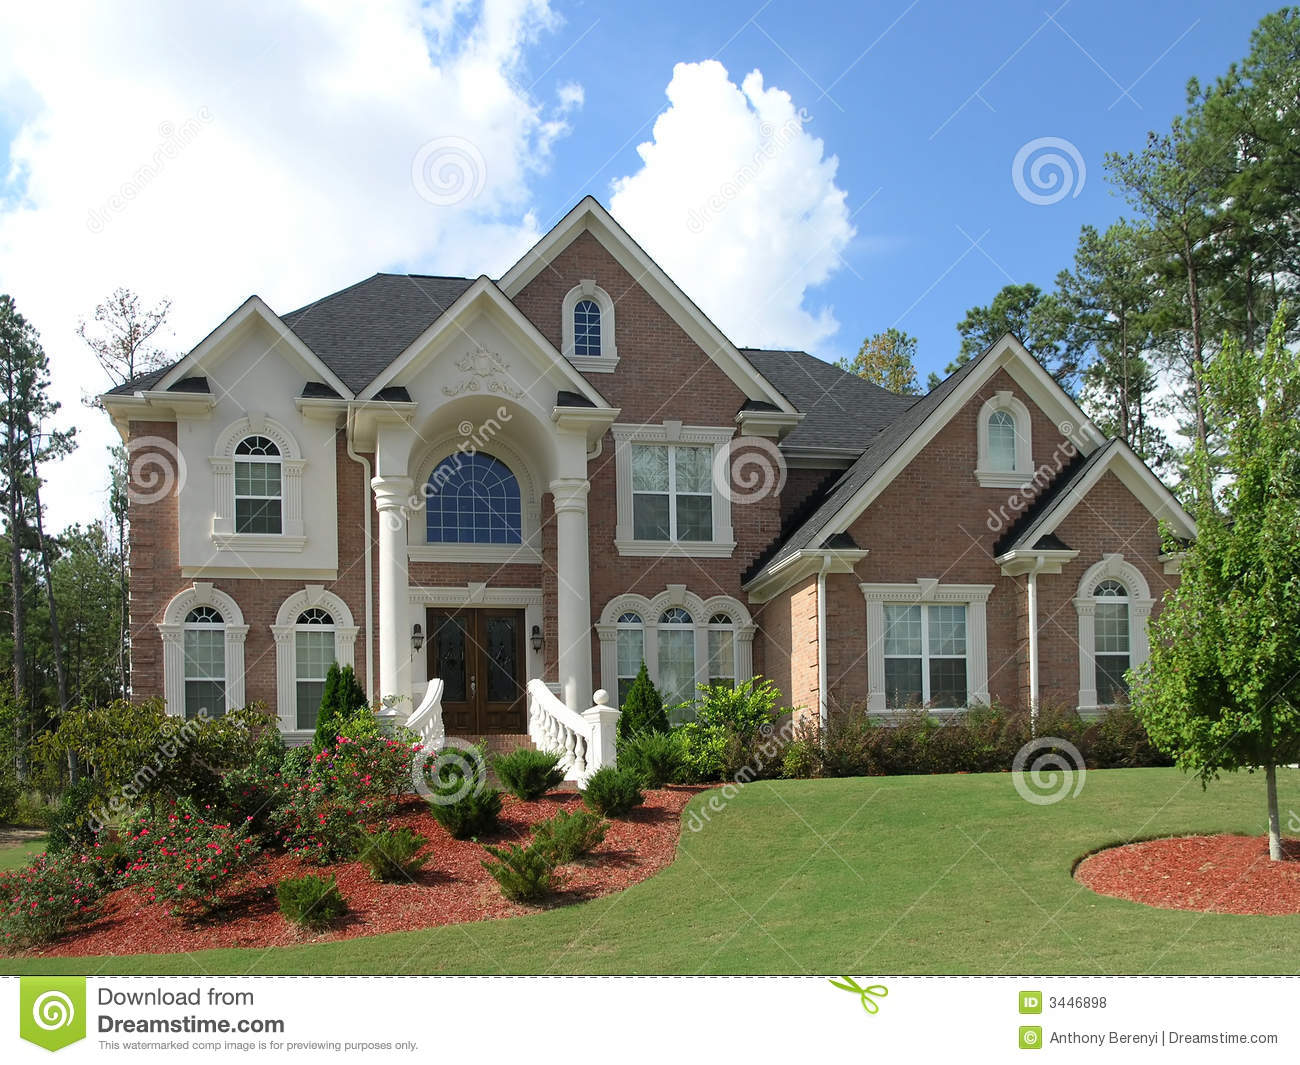 Luxury home exterior 39 royalty free stock photos image for Luxury home exterior